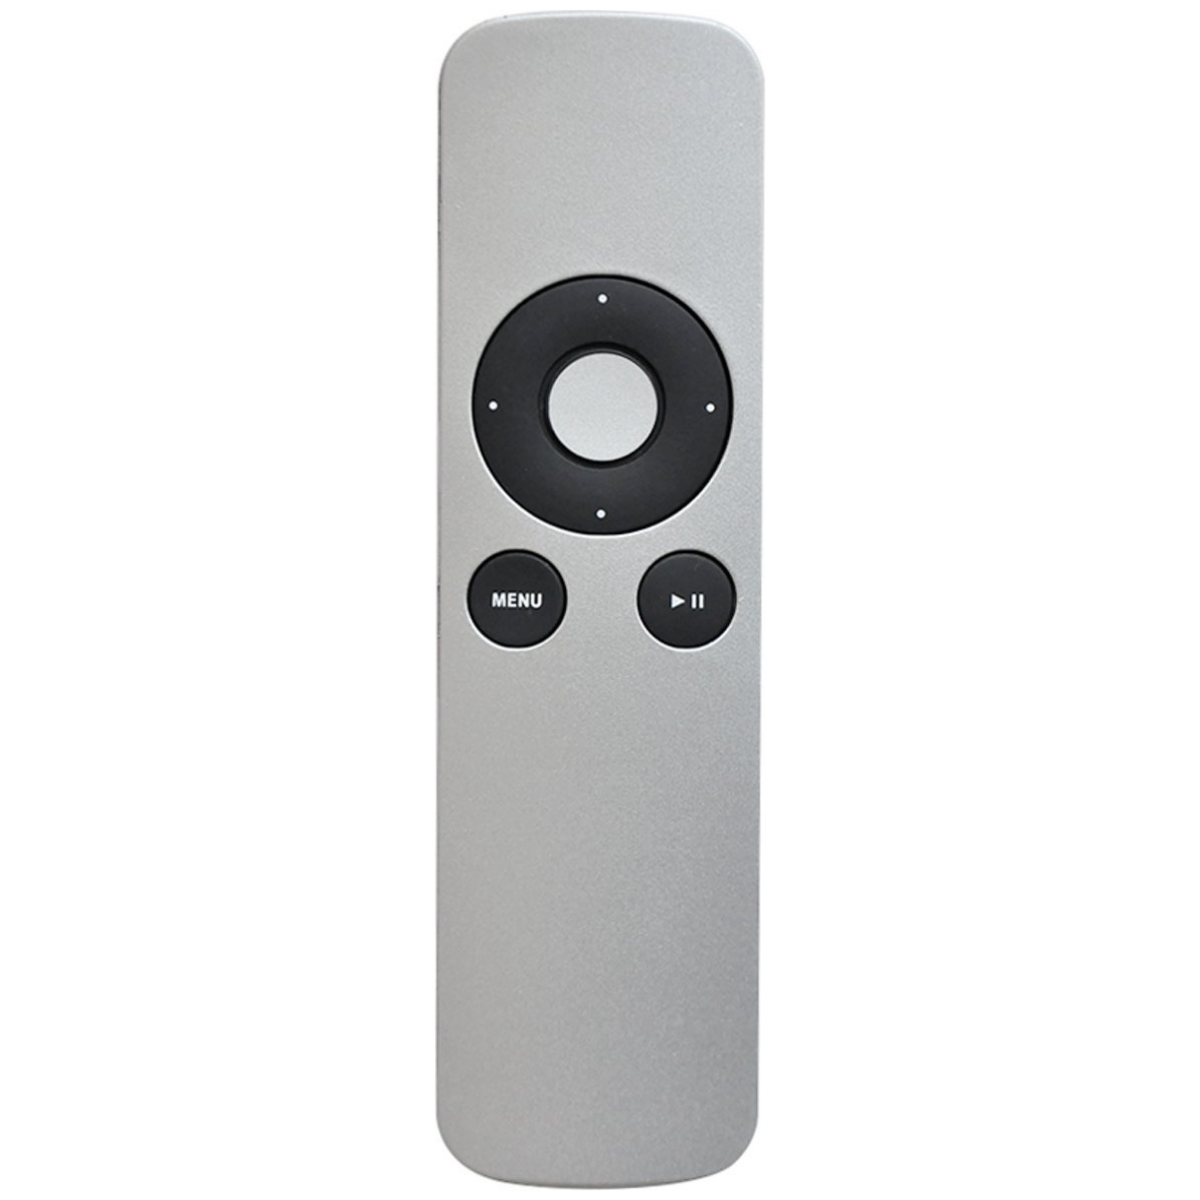 Universele Afstandsbediening voor Apple TV, iPod, iPhone & iMac | Remote Control - Plastic